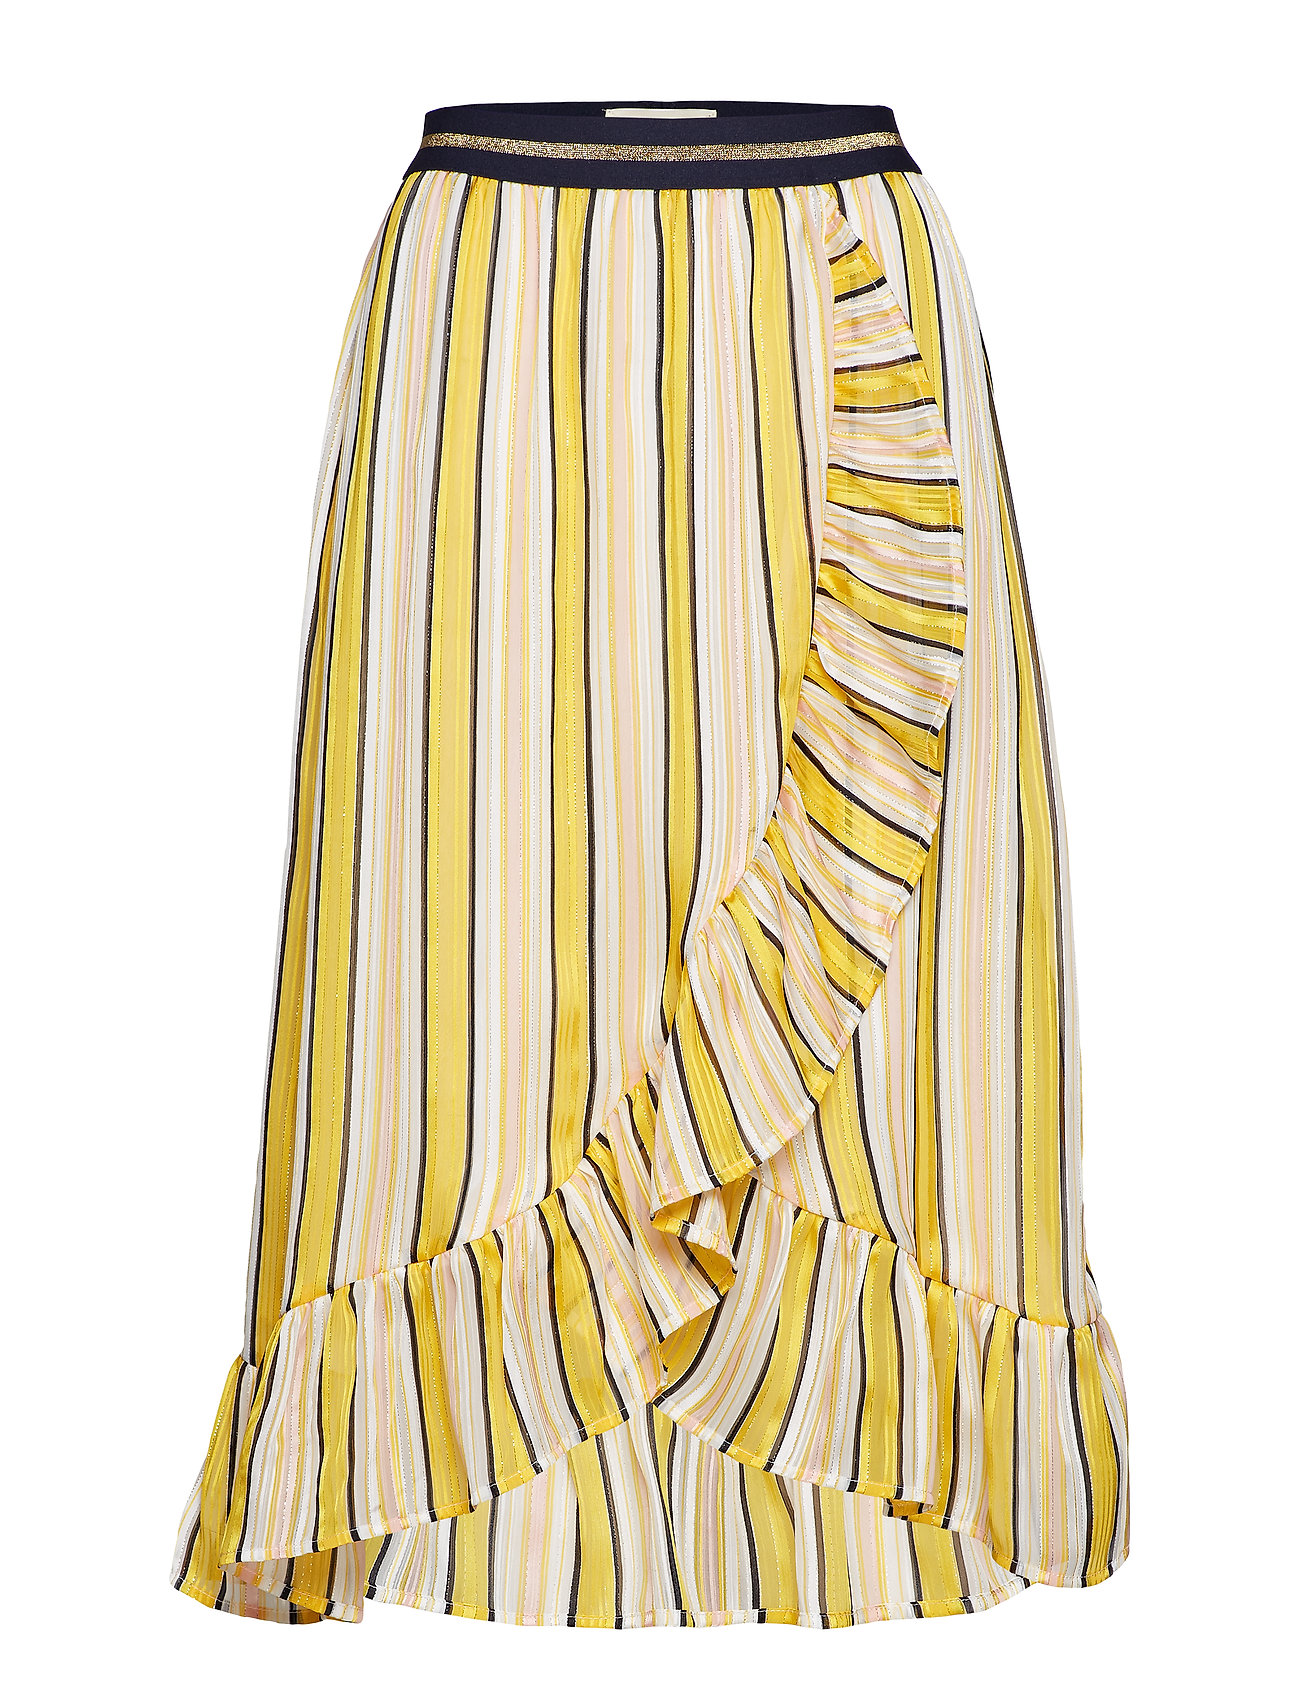 Lollys Laundry Perla Skirt - YELLOW